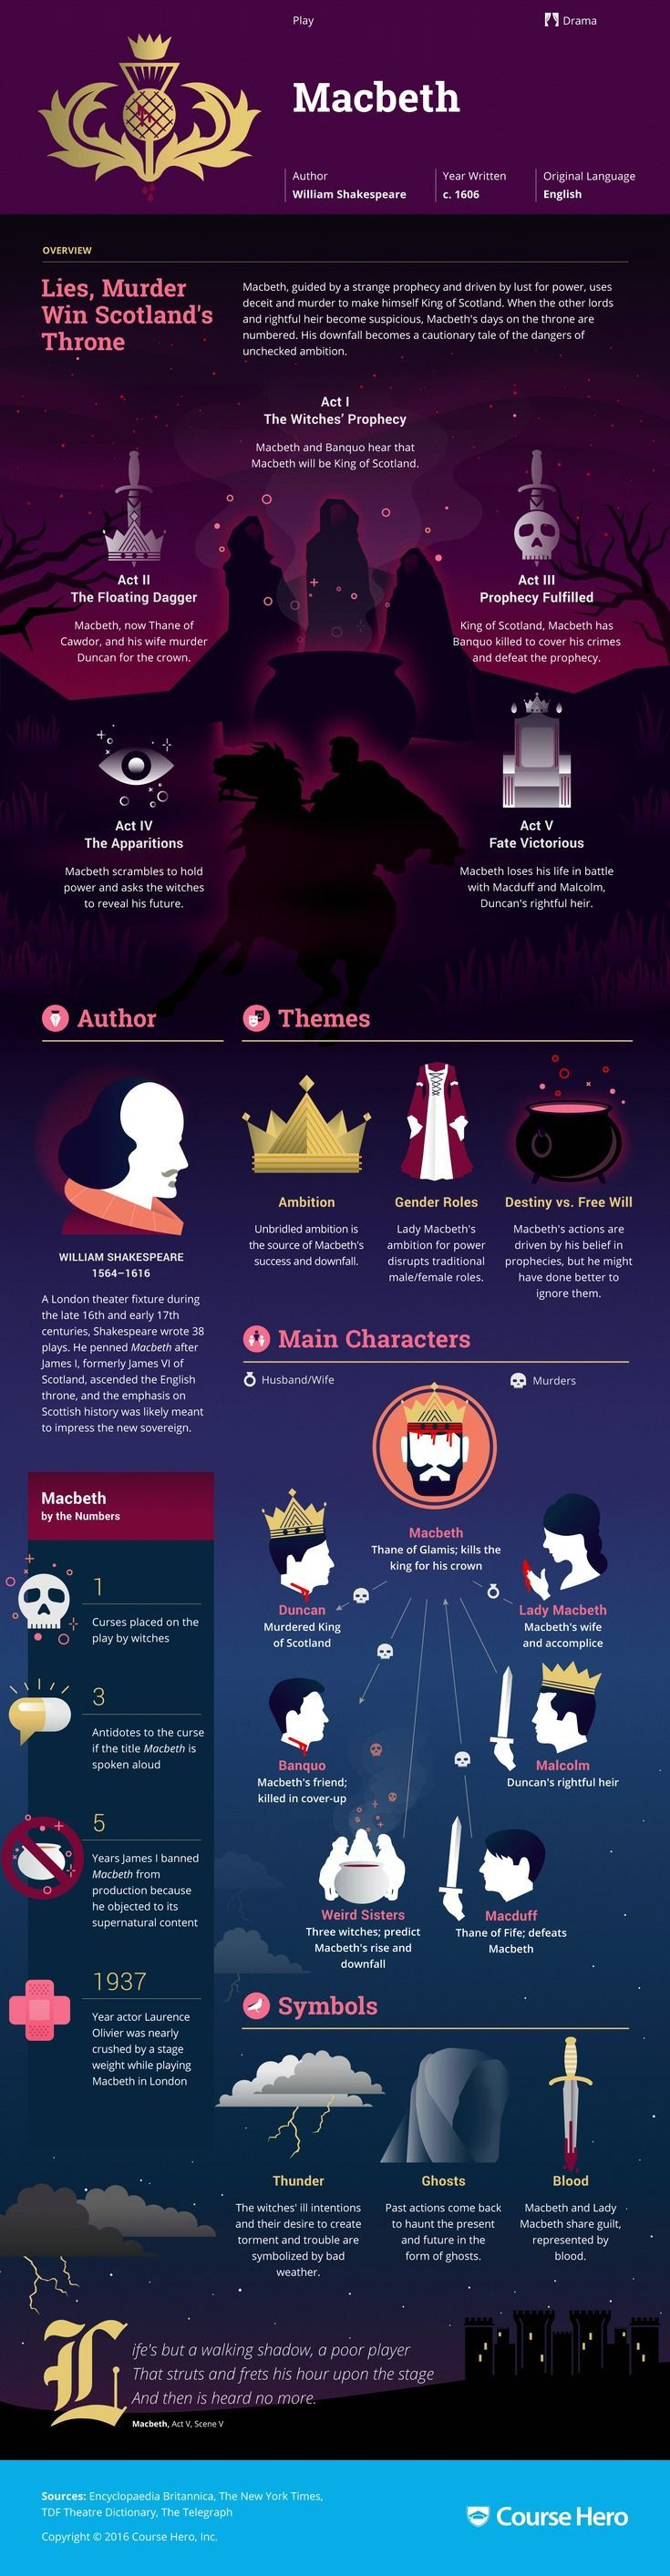 best ideas about macbeth summary macbeth themes study guide for william shakespeare s macbeth including scene summary character analysis and more learn all about macbeth ask questions